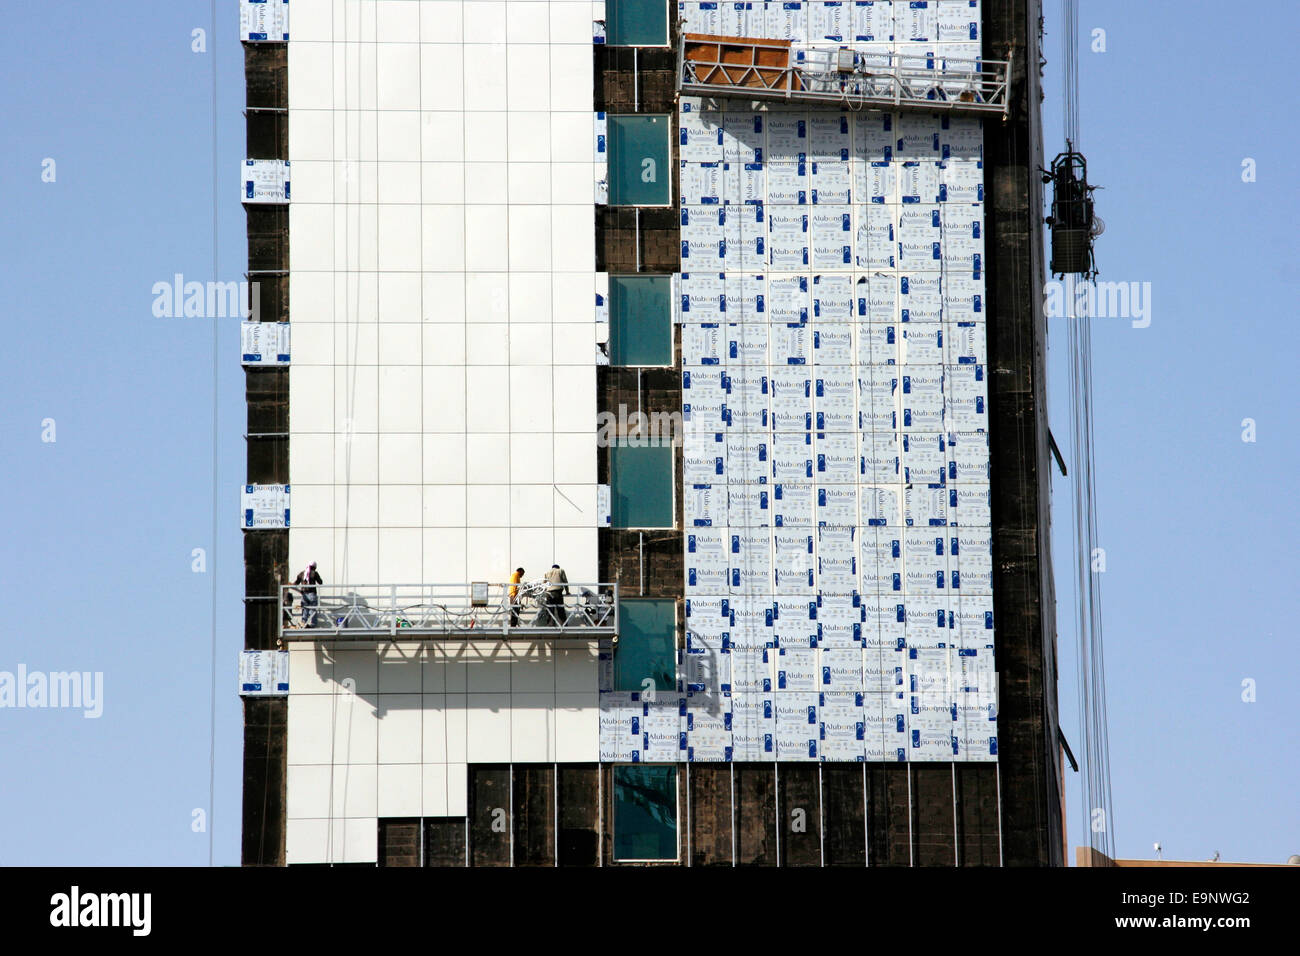 Construction work on a tower in Manama, Bahrain - Stock Image